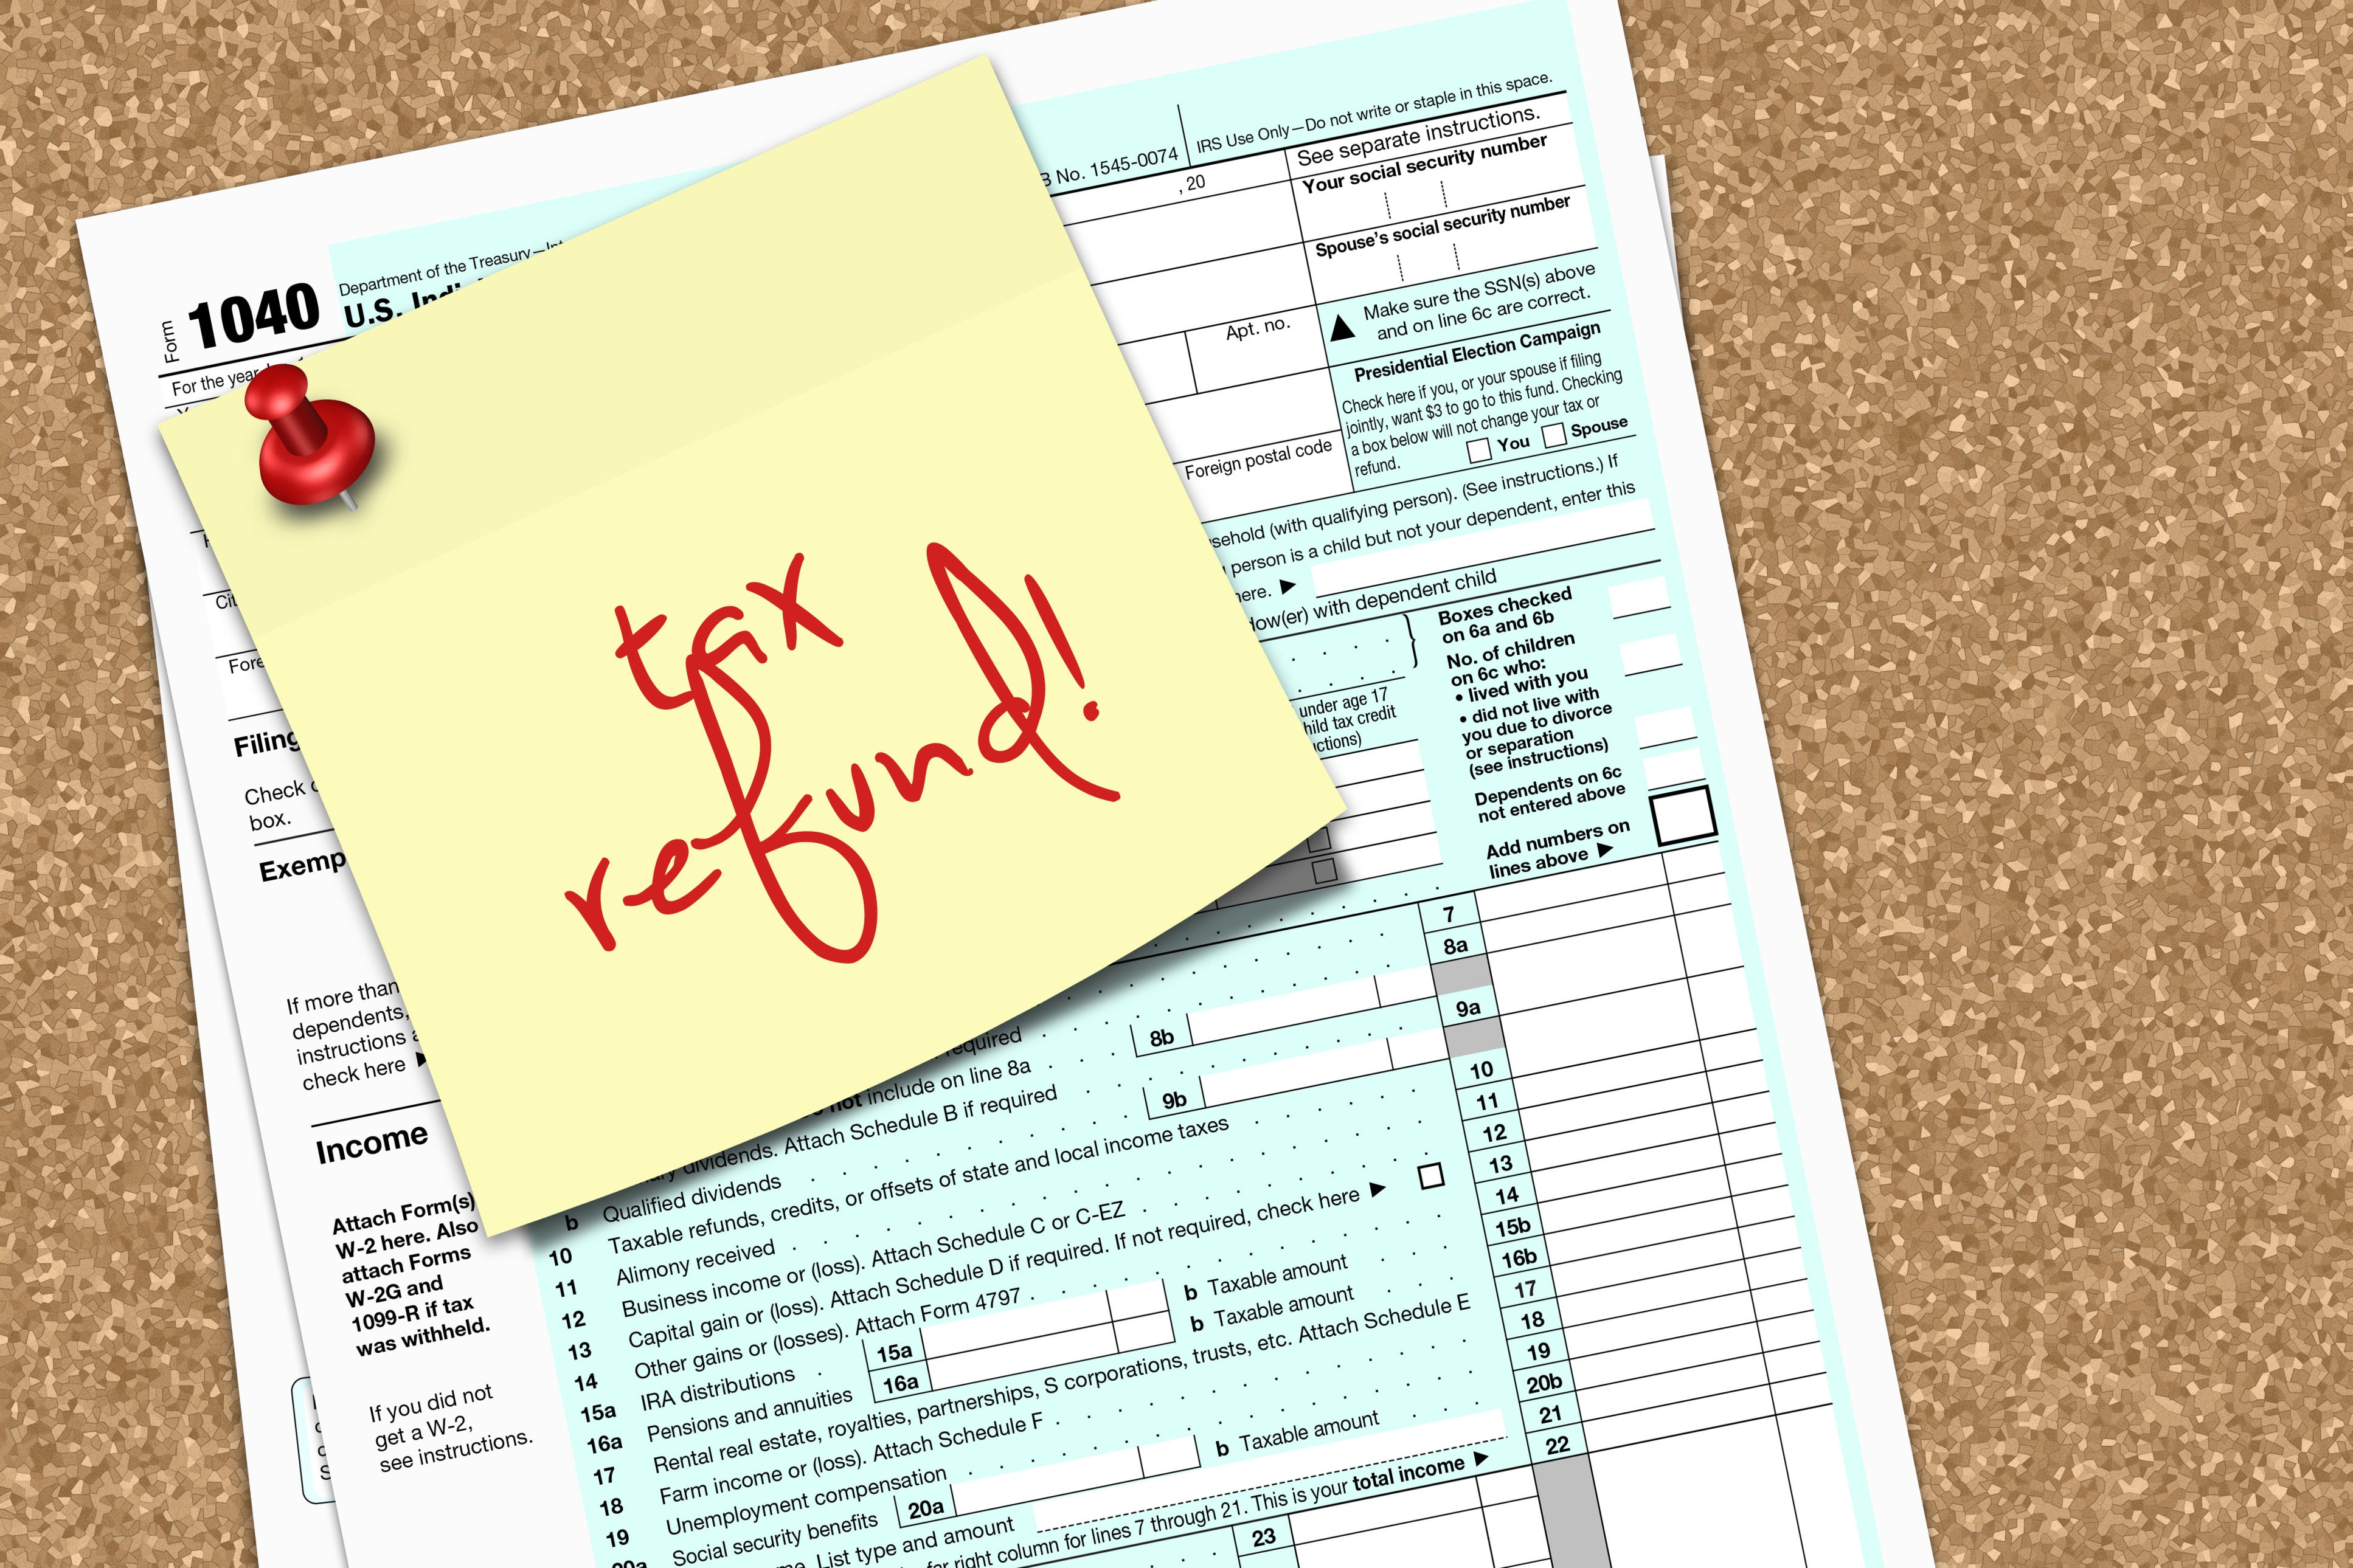 5 shrewd ways to use your tax refund for your future